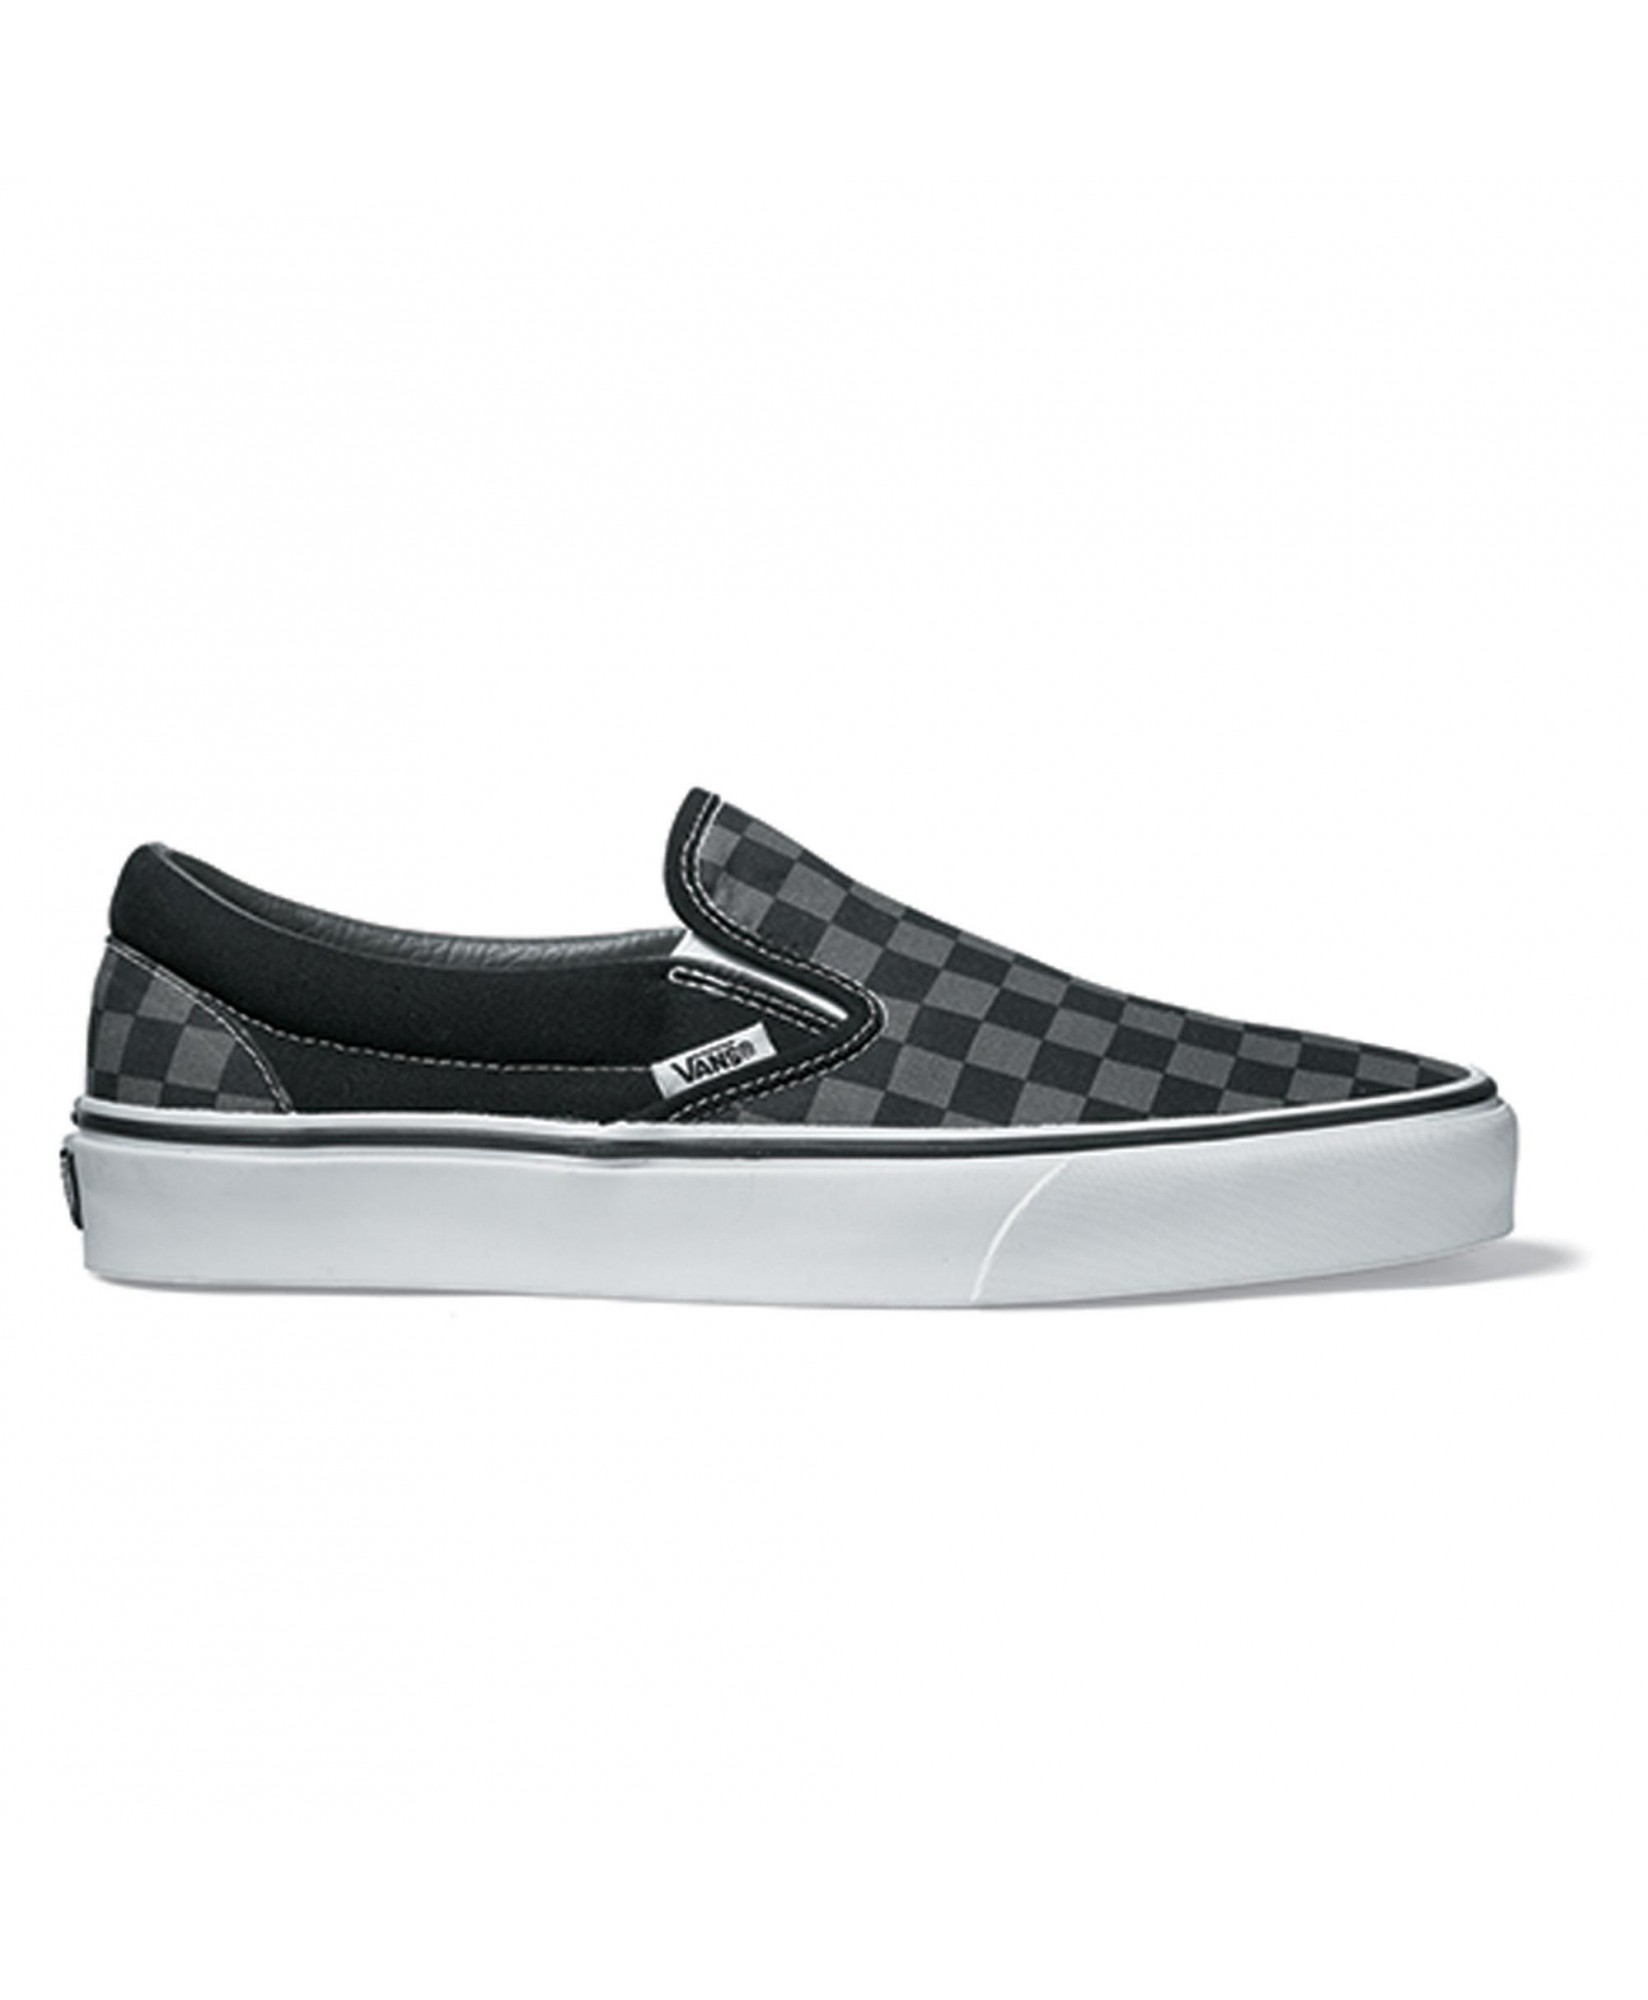 ZAPATILLAS CHECKERBOARD OLD SKOOL SLIP-ON ZAPATILLAS CHECKERBOARD OLD SKOOL SLIP-ON